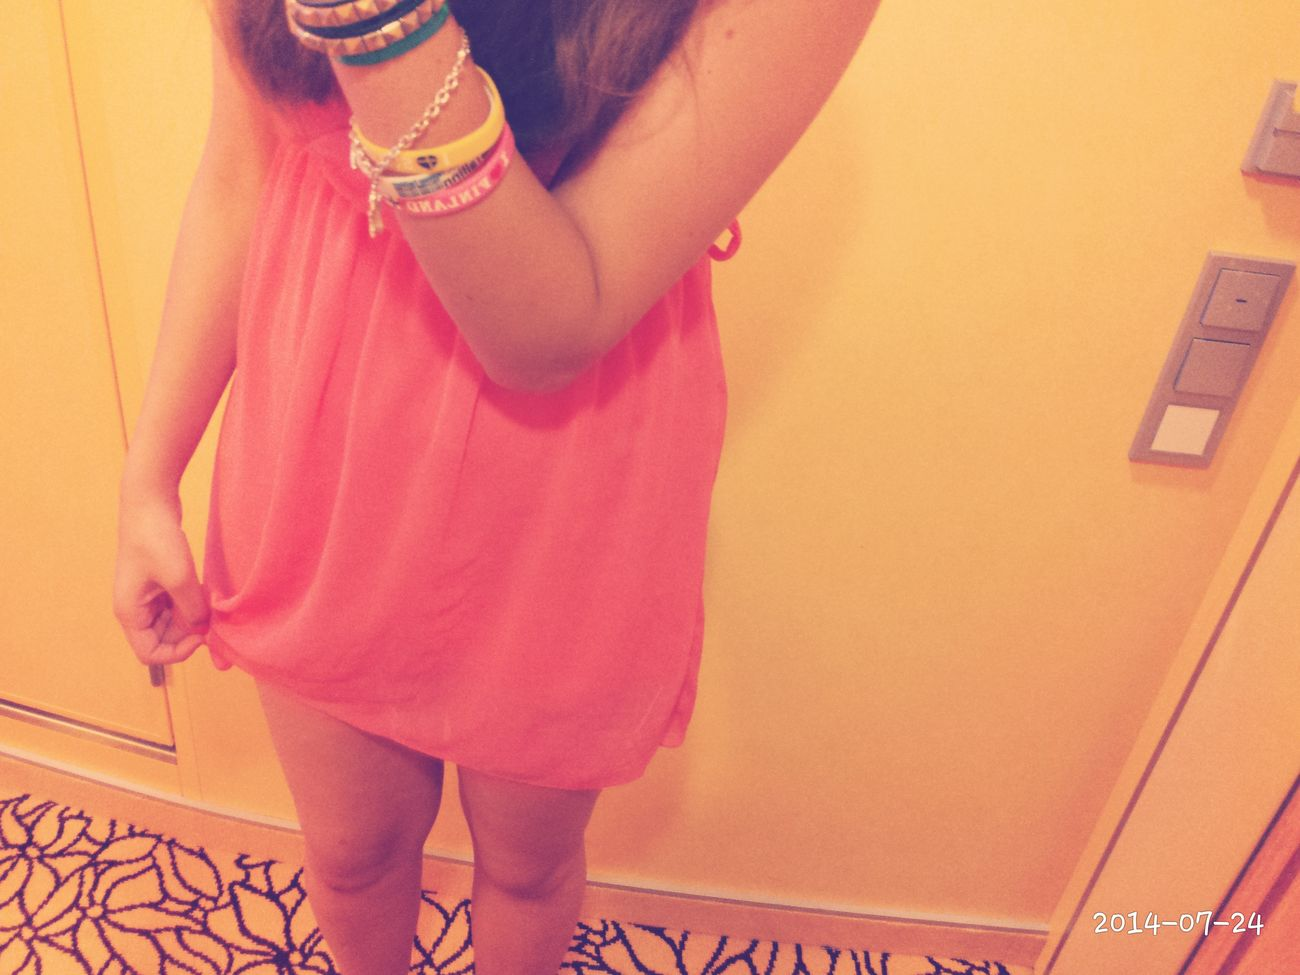 Pink Dress❤ Cruise Lovr Me Or Hate Me I Do Not Care